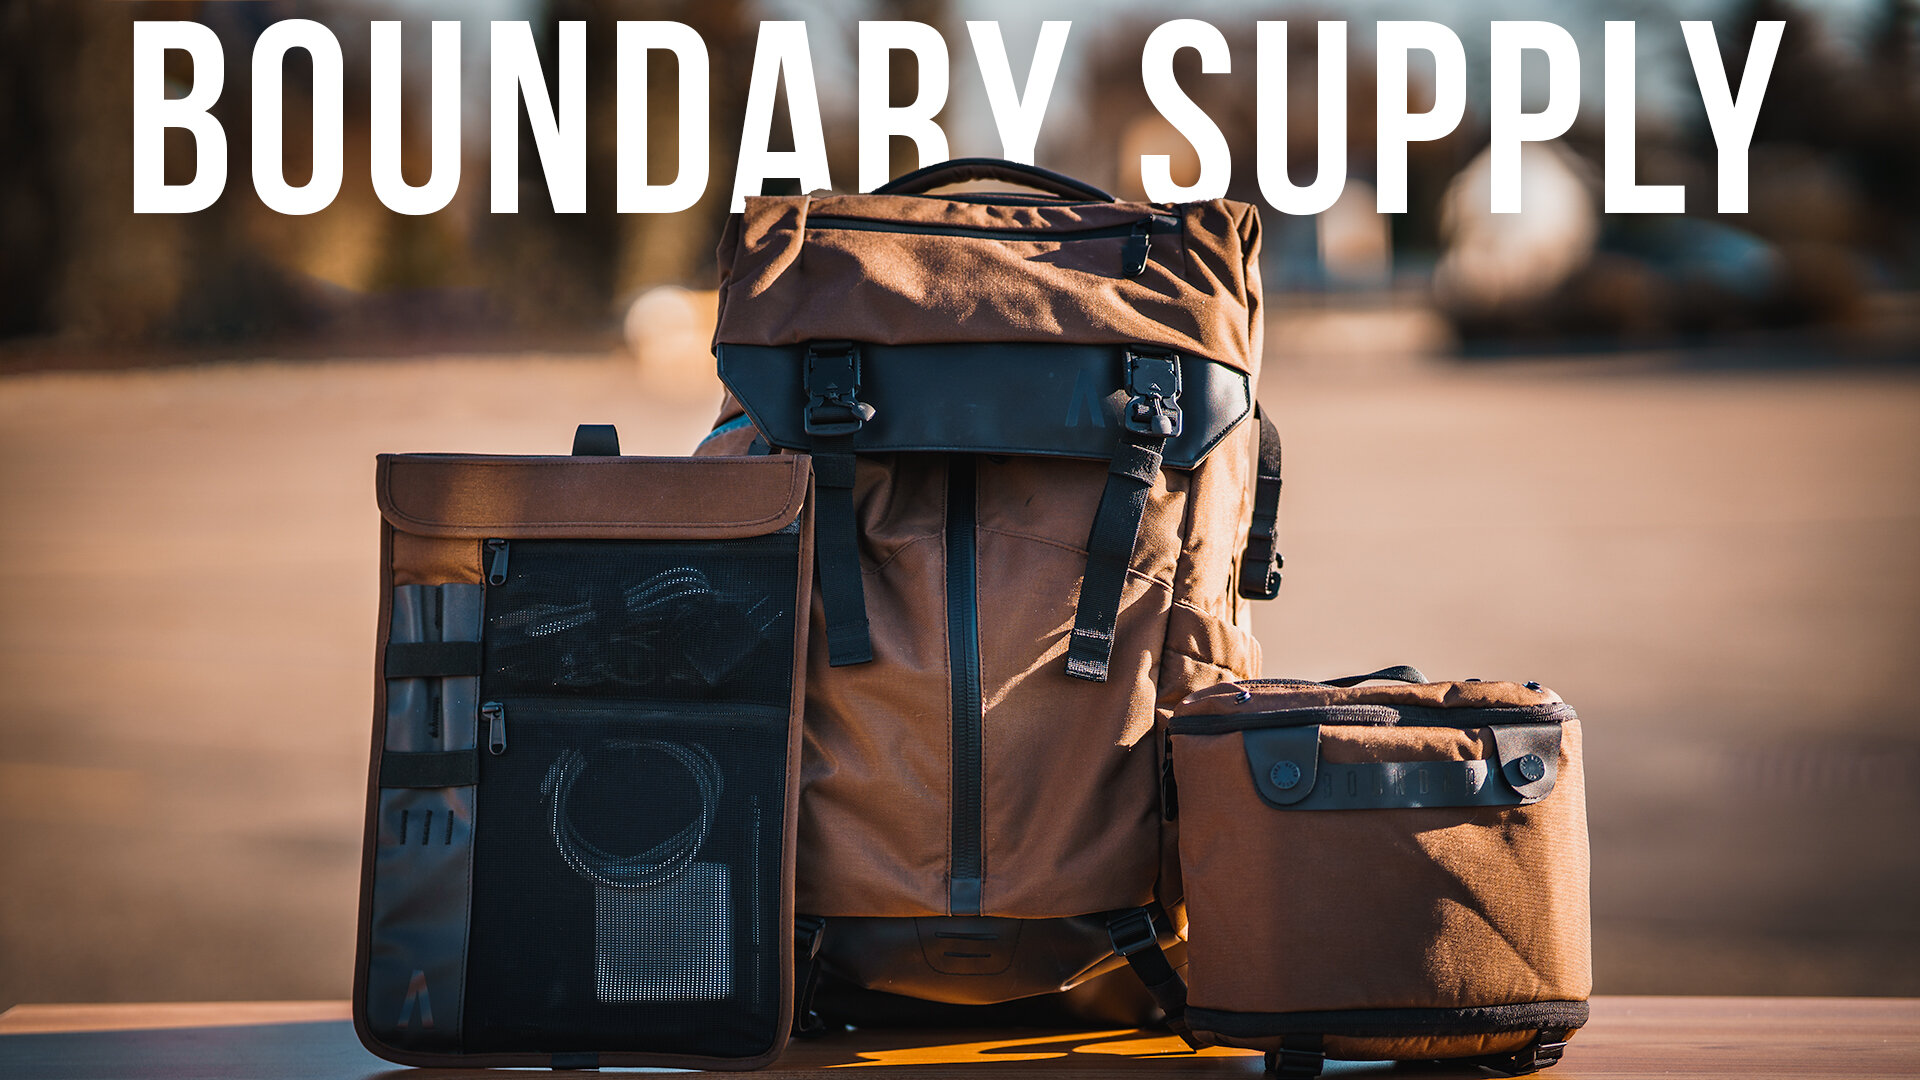 Boundary Supply Prima System Bag Review & Giveaway